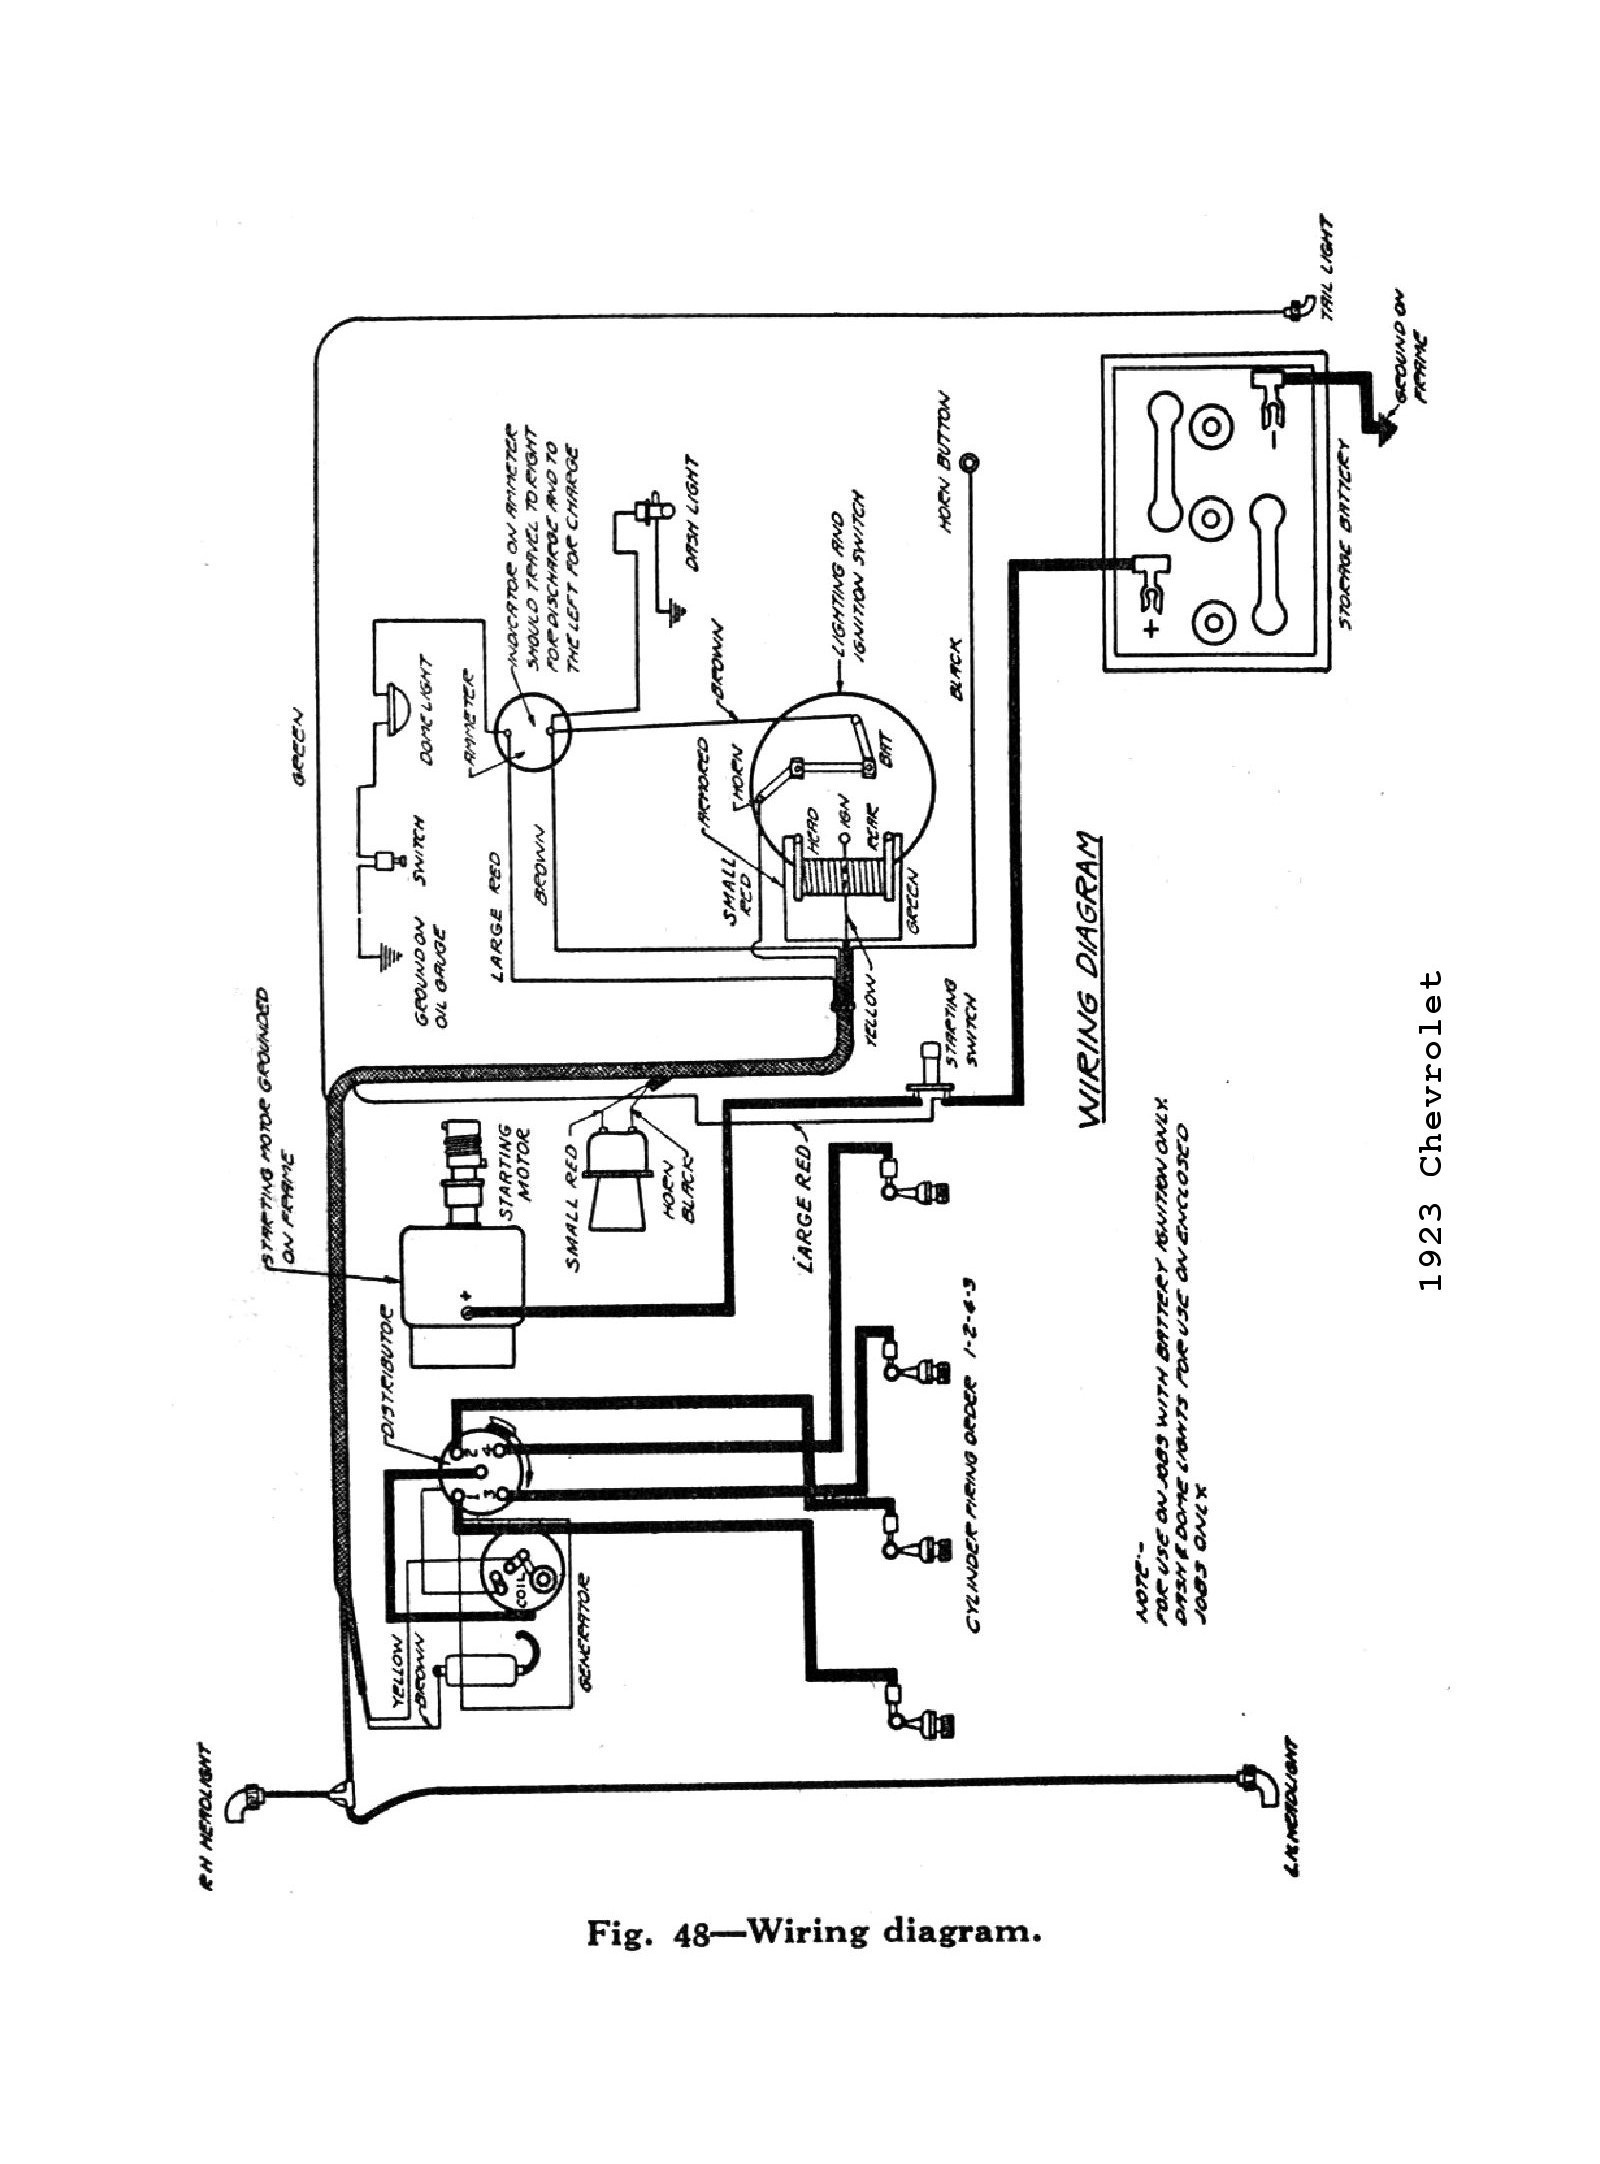 67 72 Chevy Truck Wiring Diagram Chevy Wiring Diagrams Of 67 72 Chevy Truck Wiring Diagram